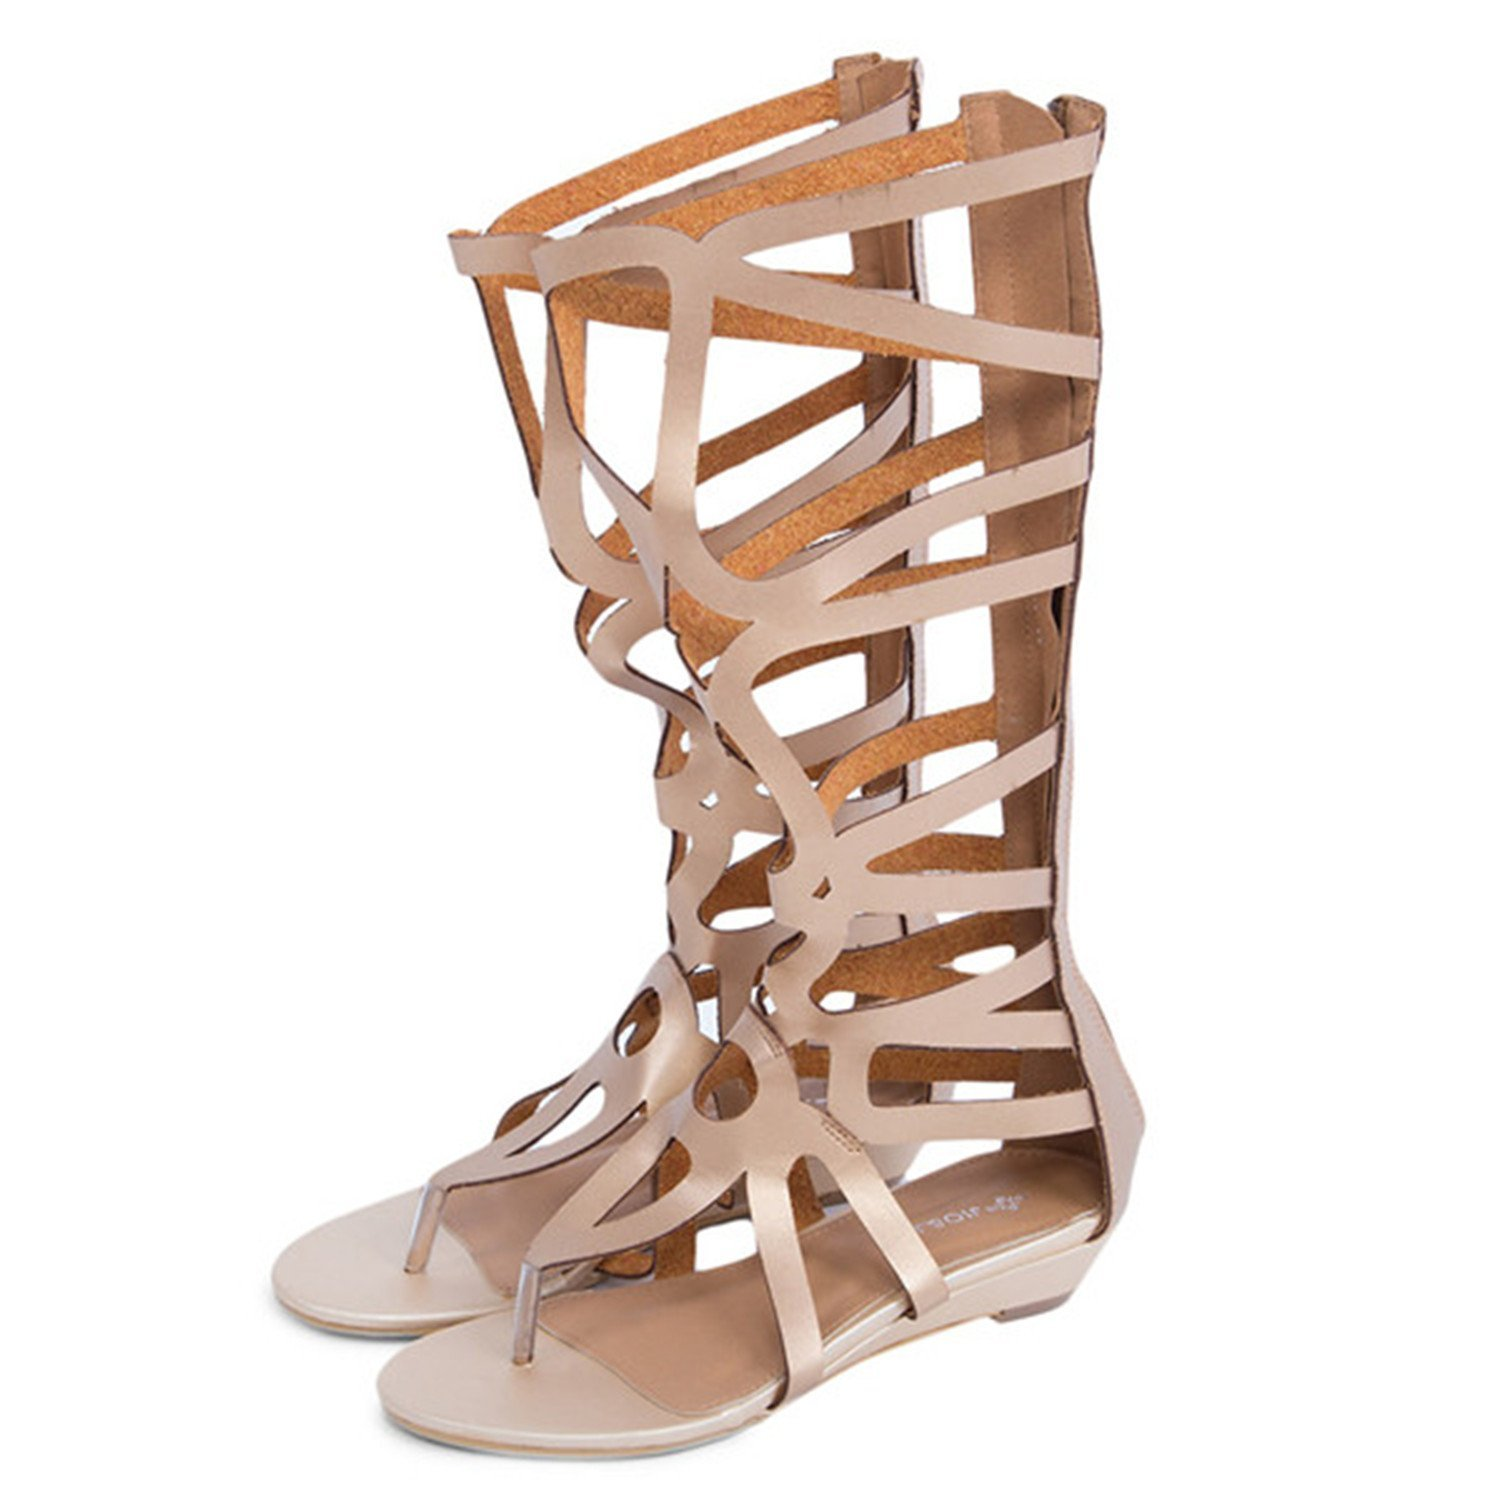 0b3c54bbe52 Get Quotations · Feilongzaitianba Flat Sandals For Women On Sale Under  161Women Sandals Sexy Knee High Summer Shoes Gladiator